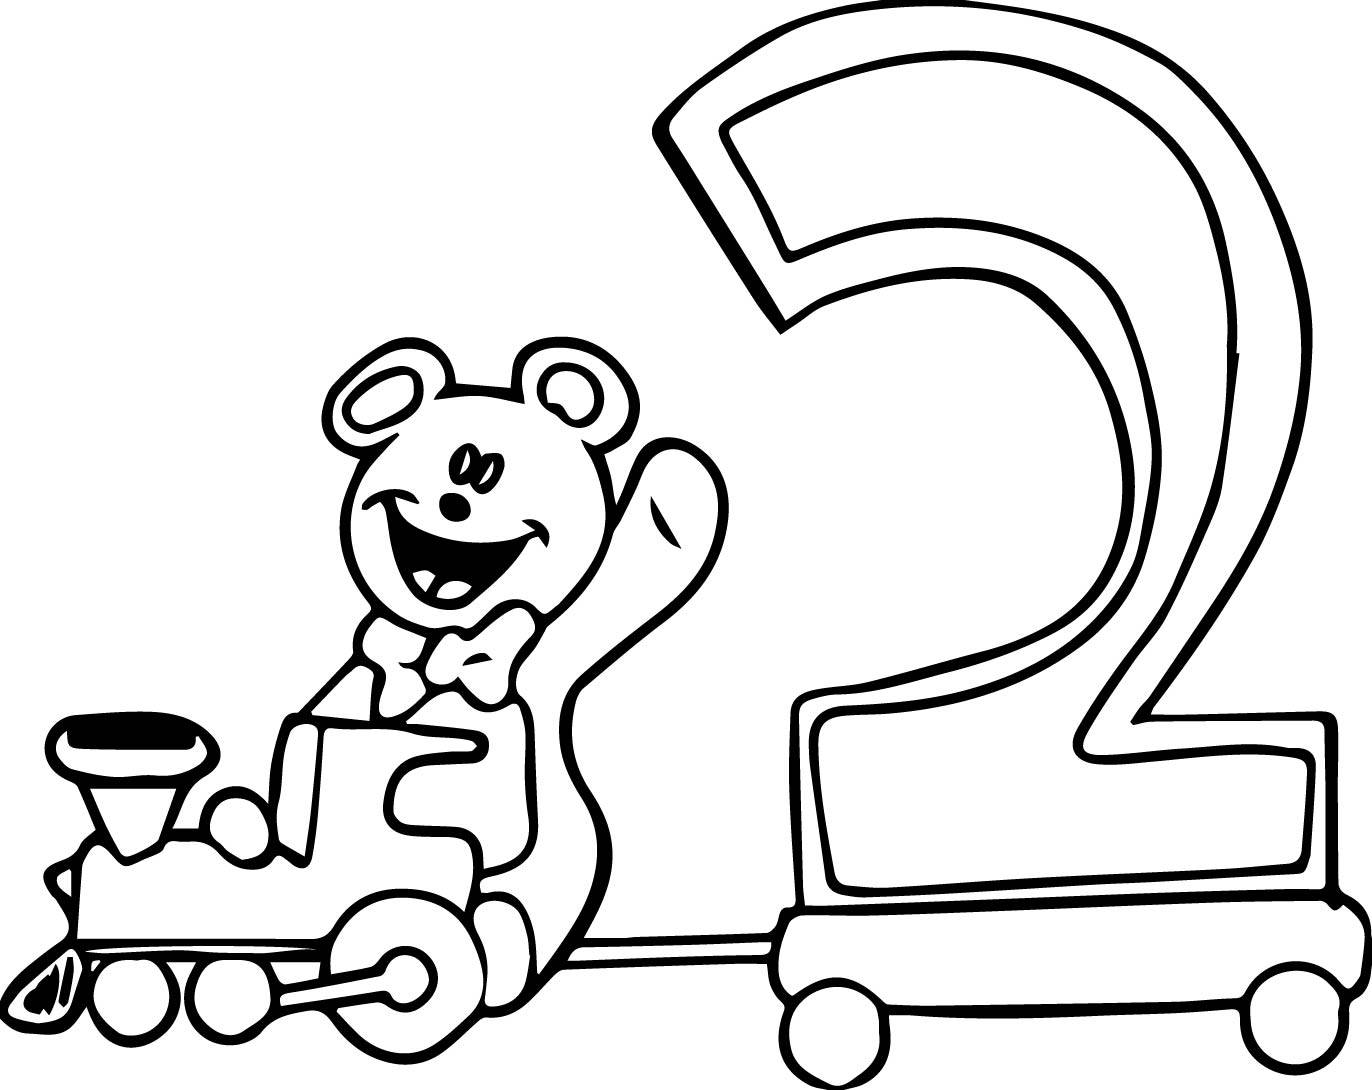 Number 2 coloring pages - Number Coloring Pages